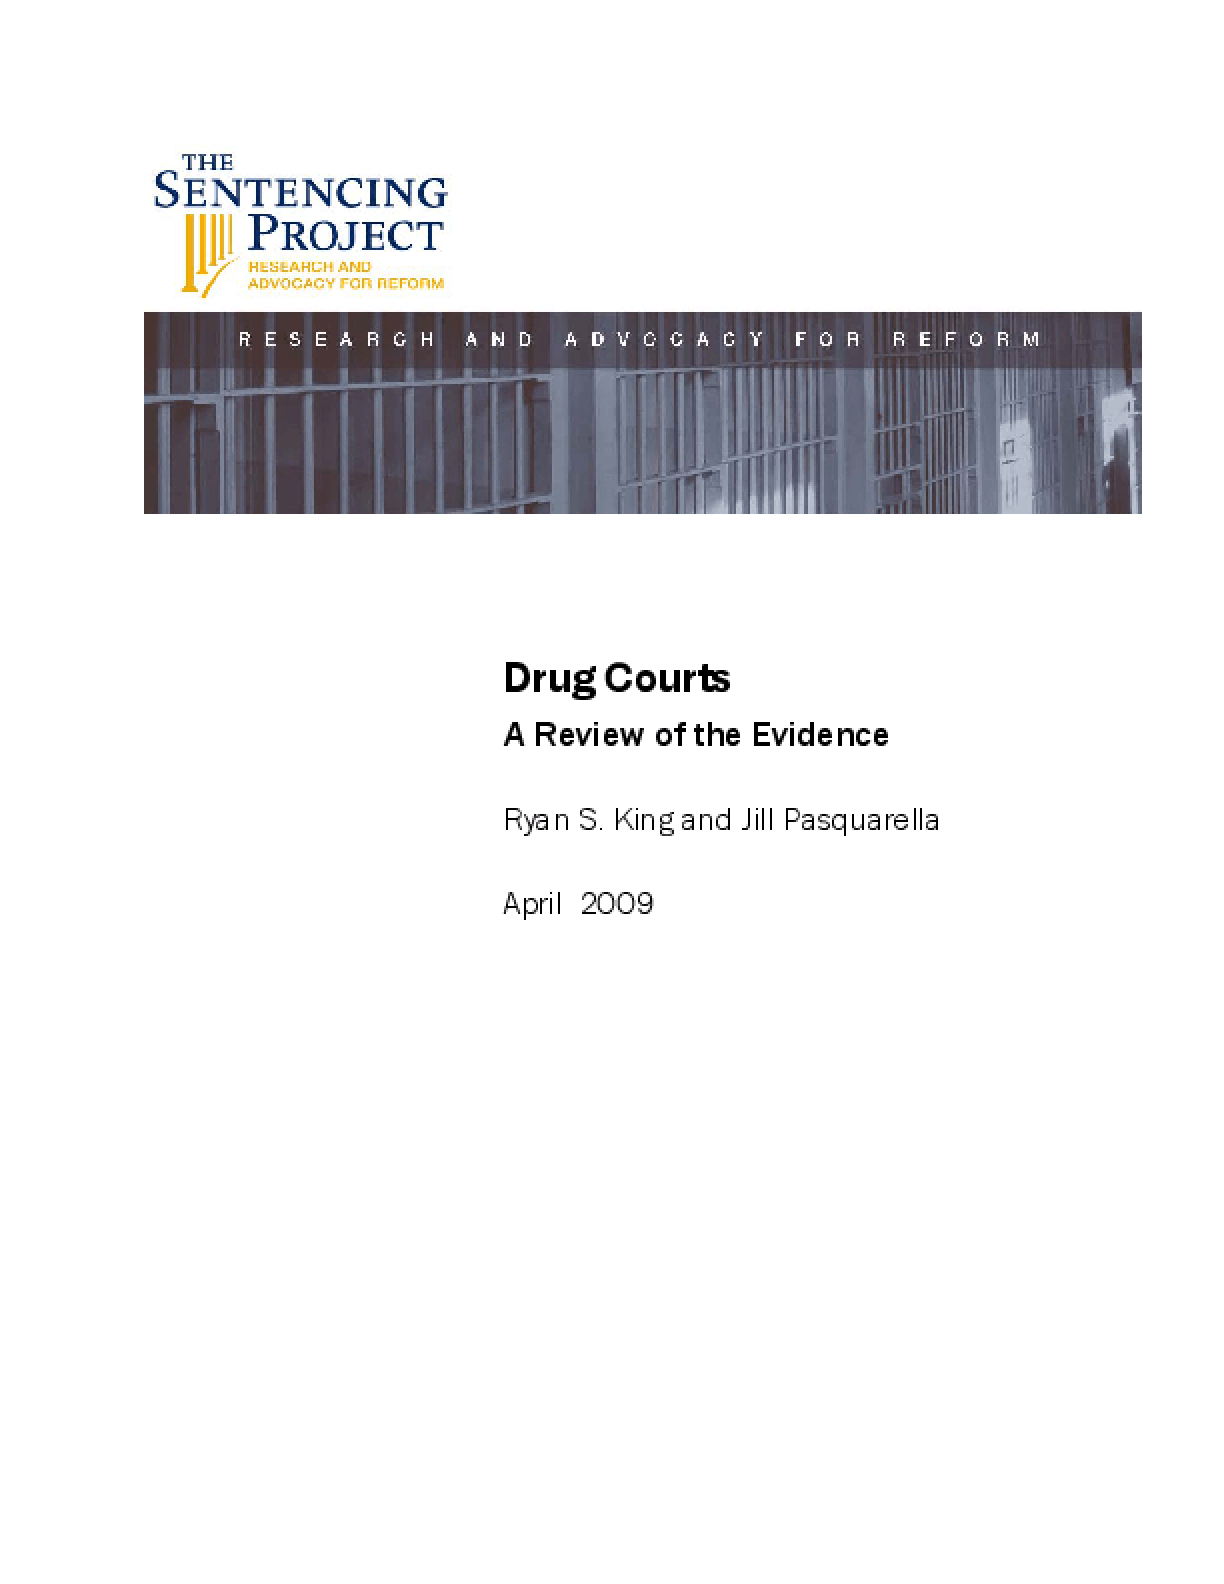 Drug Courts: A Review of the Evidence